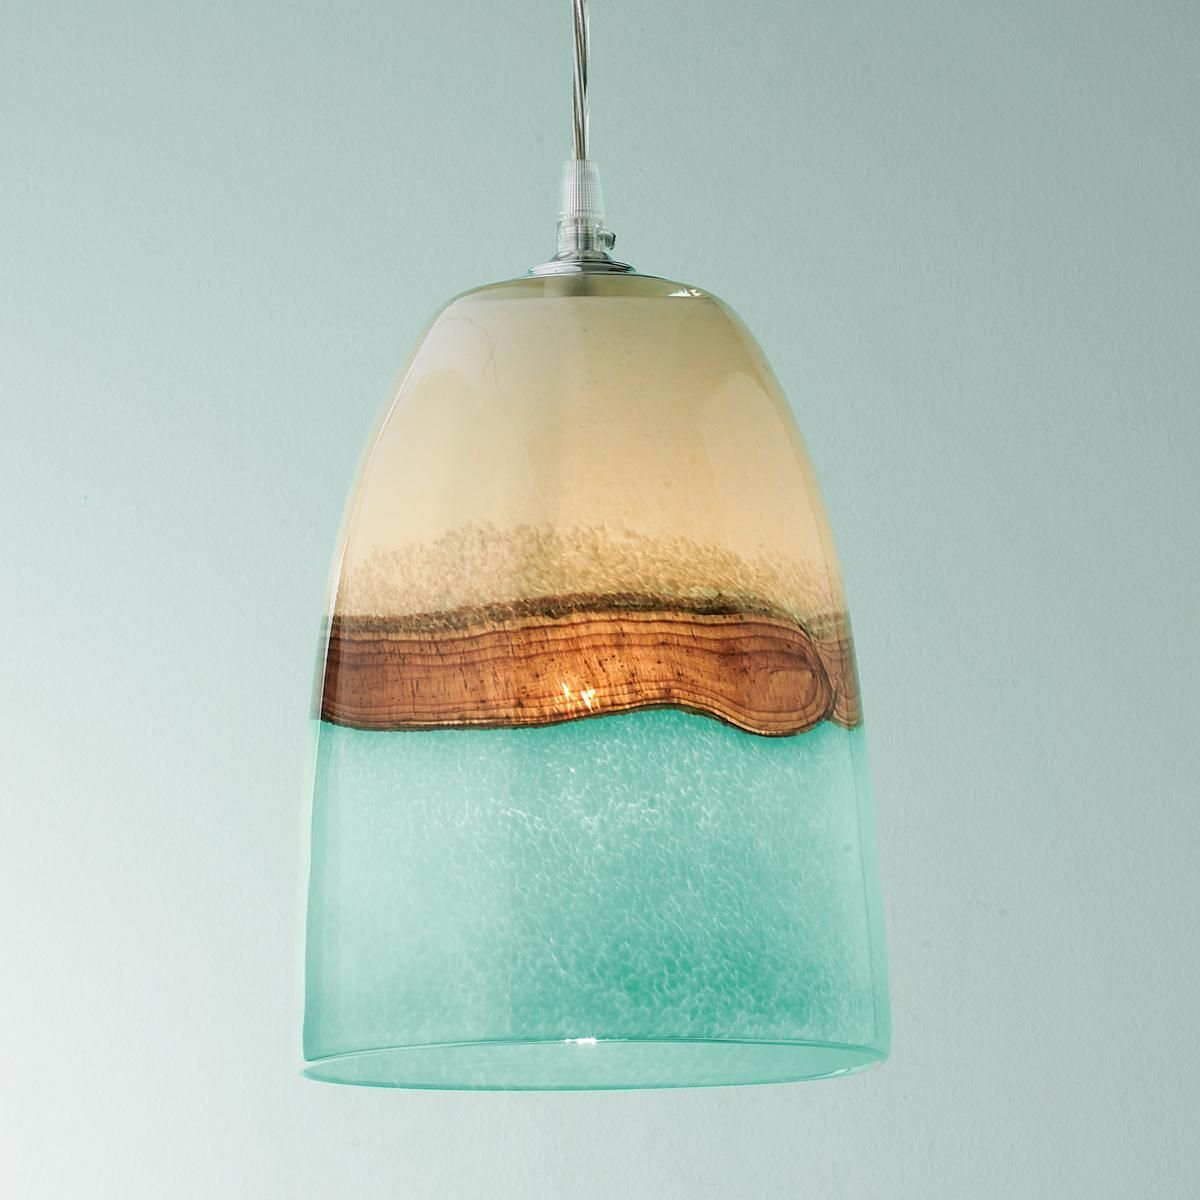 Strata art glass pendant light cream art glass pendants and strata art glass pendant light earth sea and clouds seem to unite in this brown aqua and cream art glass pendant light its breathtaking beauty is not aloadofball Images